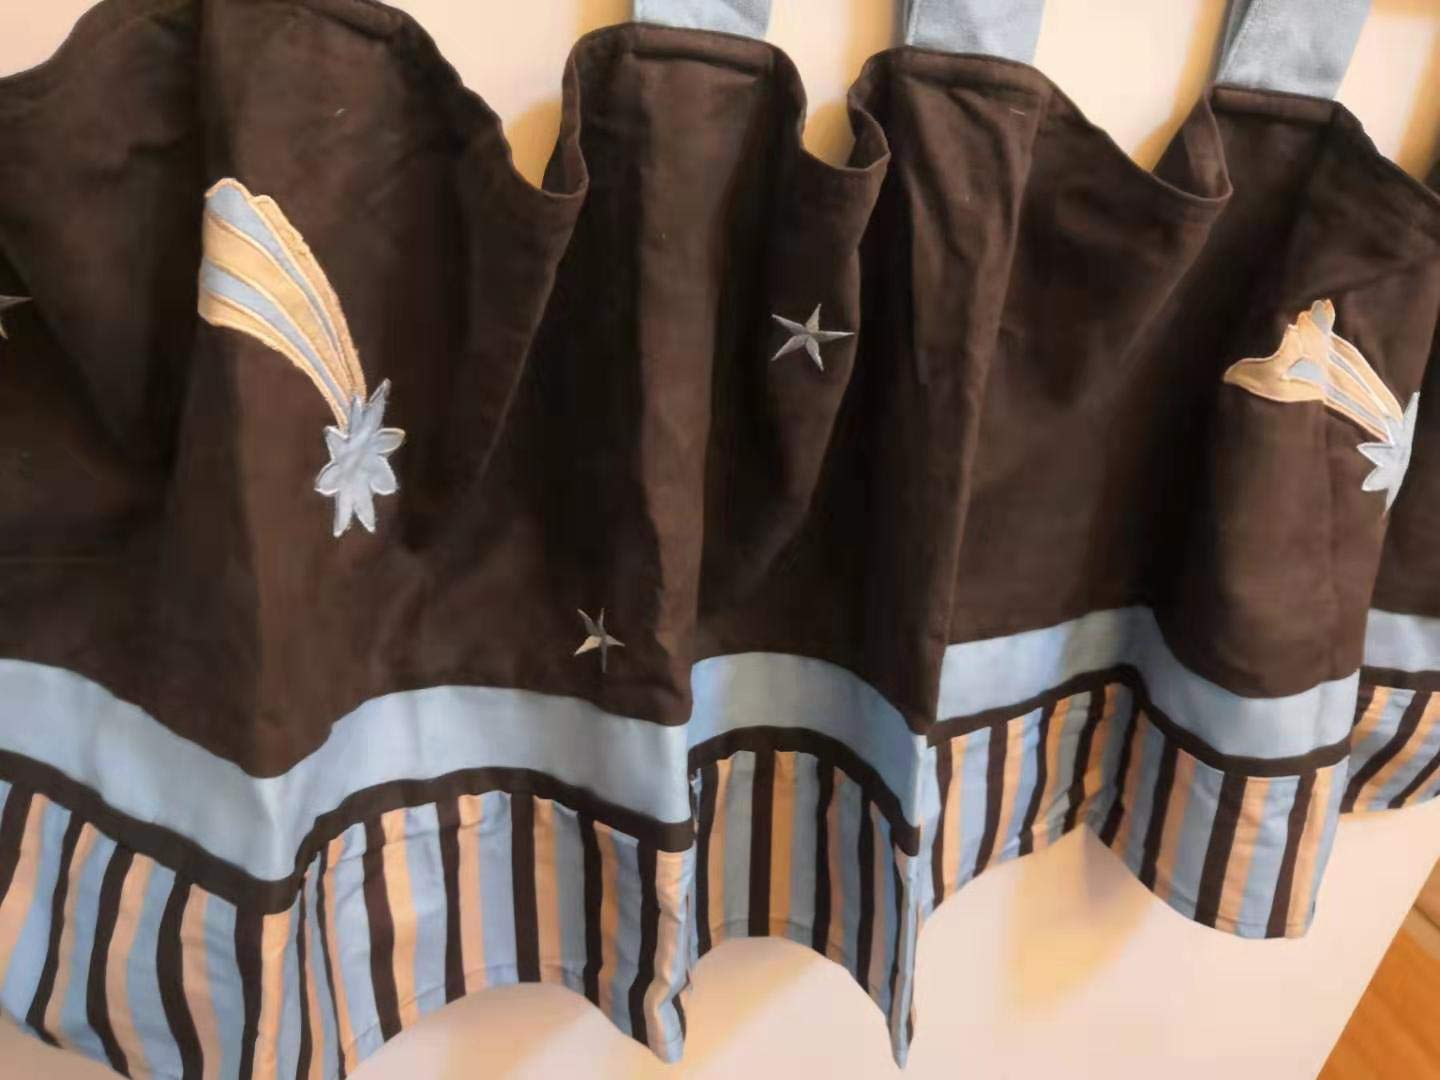 Brown Nursery Room Window Star Outlet ☆ Free Shipping Sale price Valanc Valance Embroidered